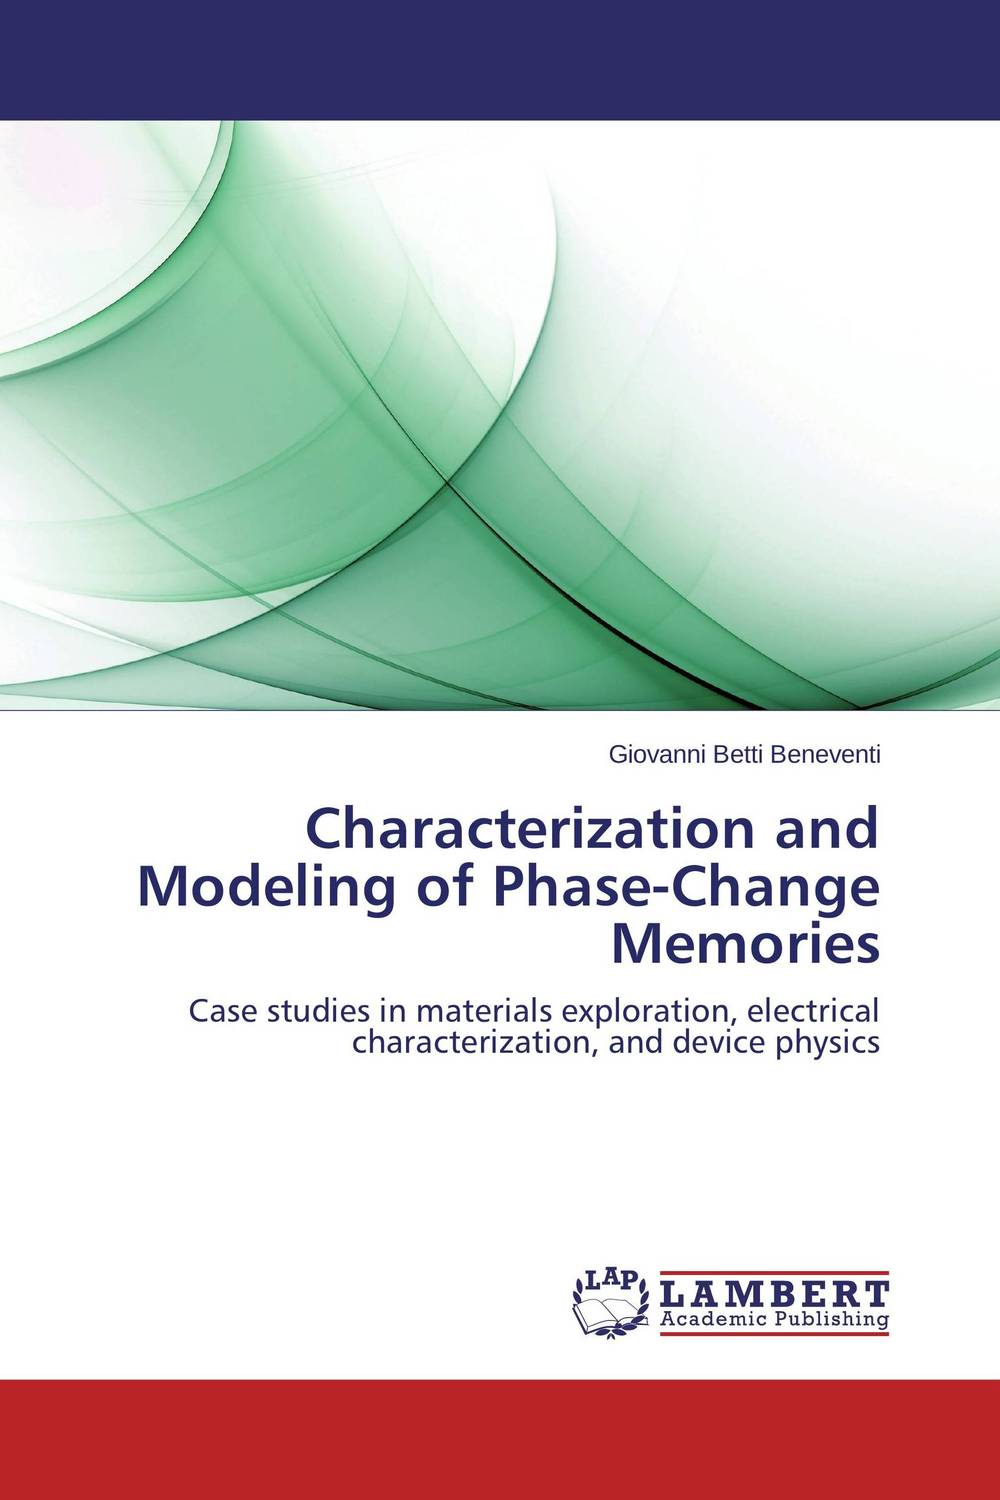 Characterization and Modeling of Phase-Change Memories purnima sareen sundeep kumar and rakesh singh molecular and pathological characterization of slow rusting in wheat